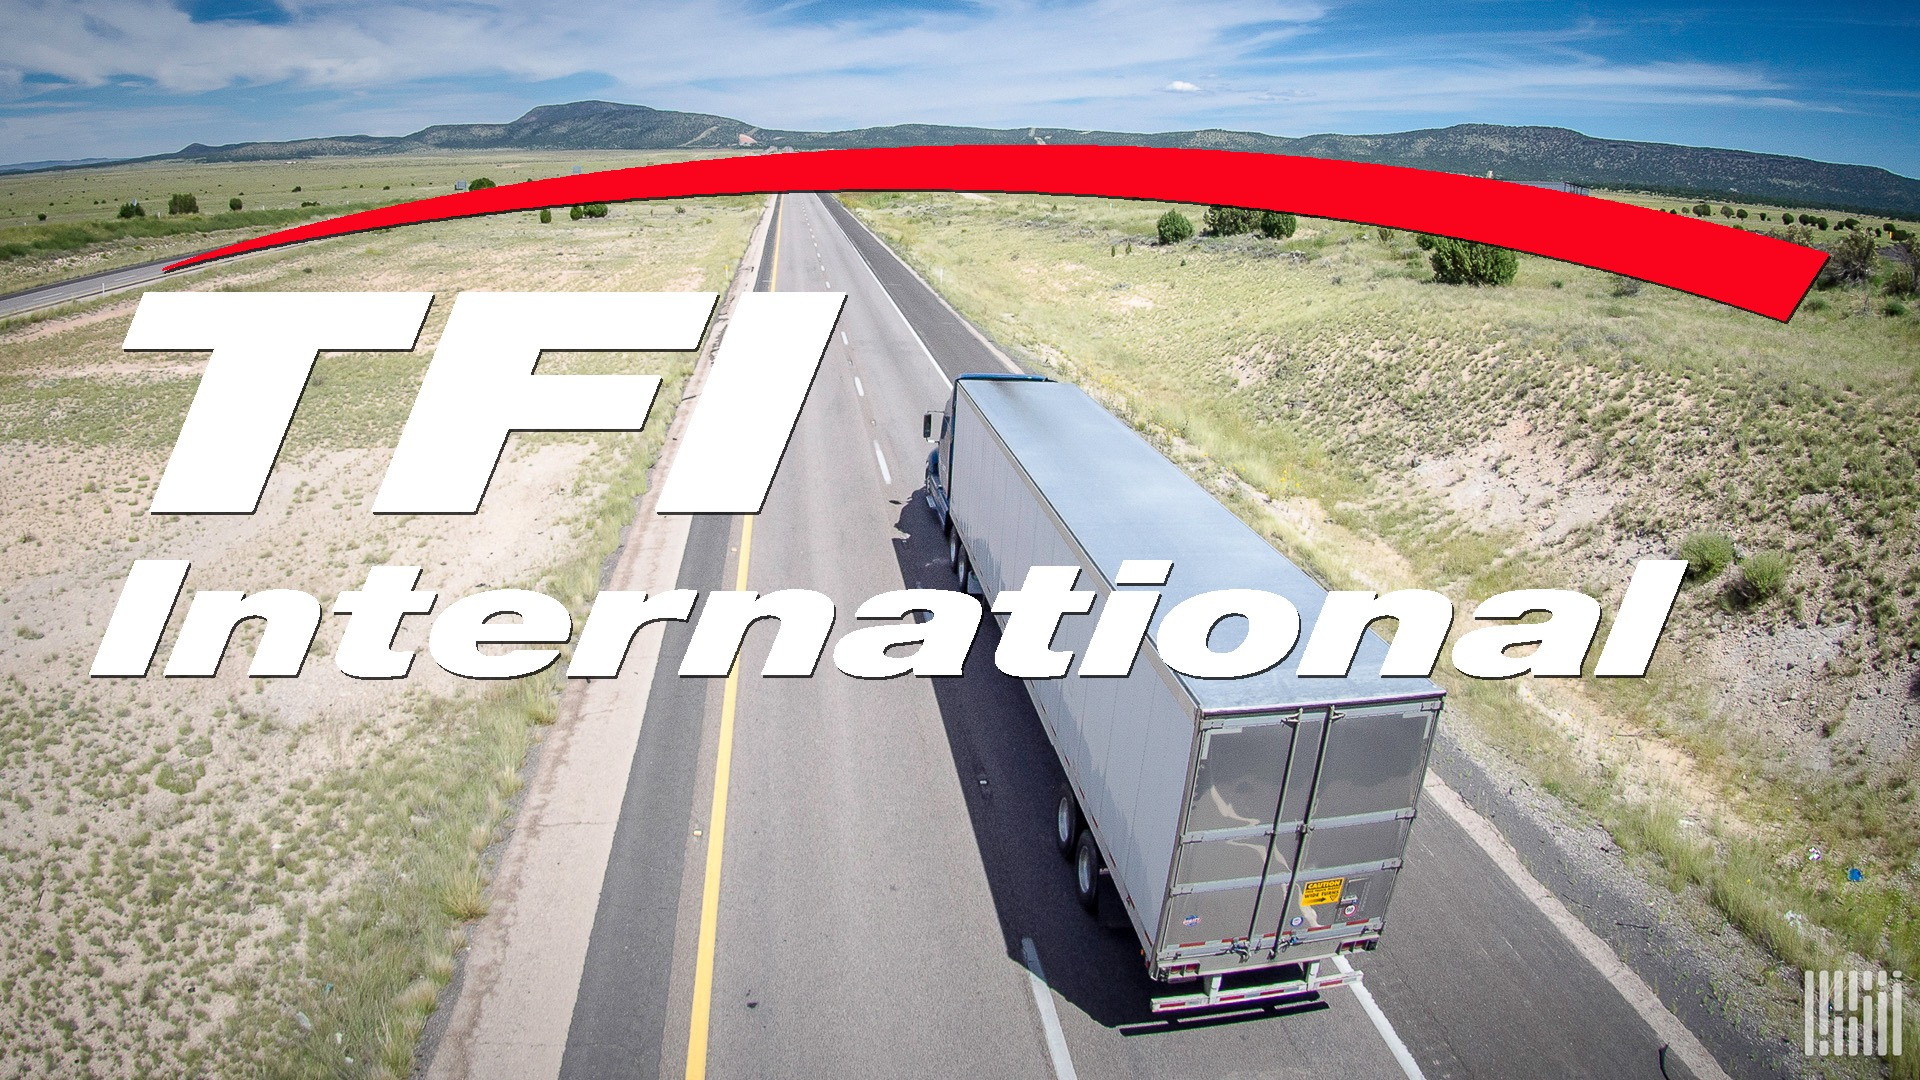 A commercial truck seen from behind travels on a highway with the logo of TFI International layered on top of the image.